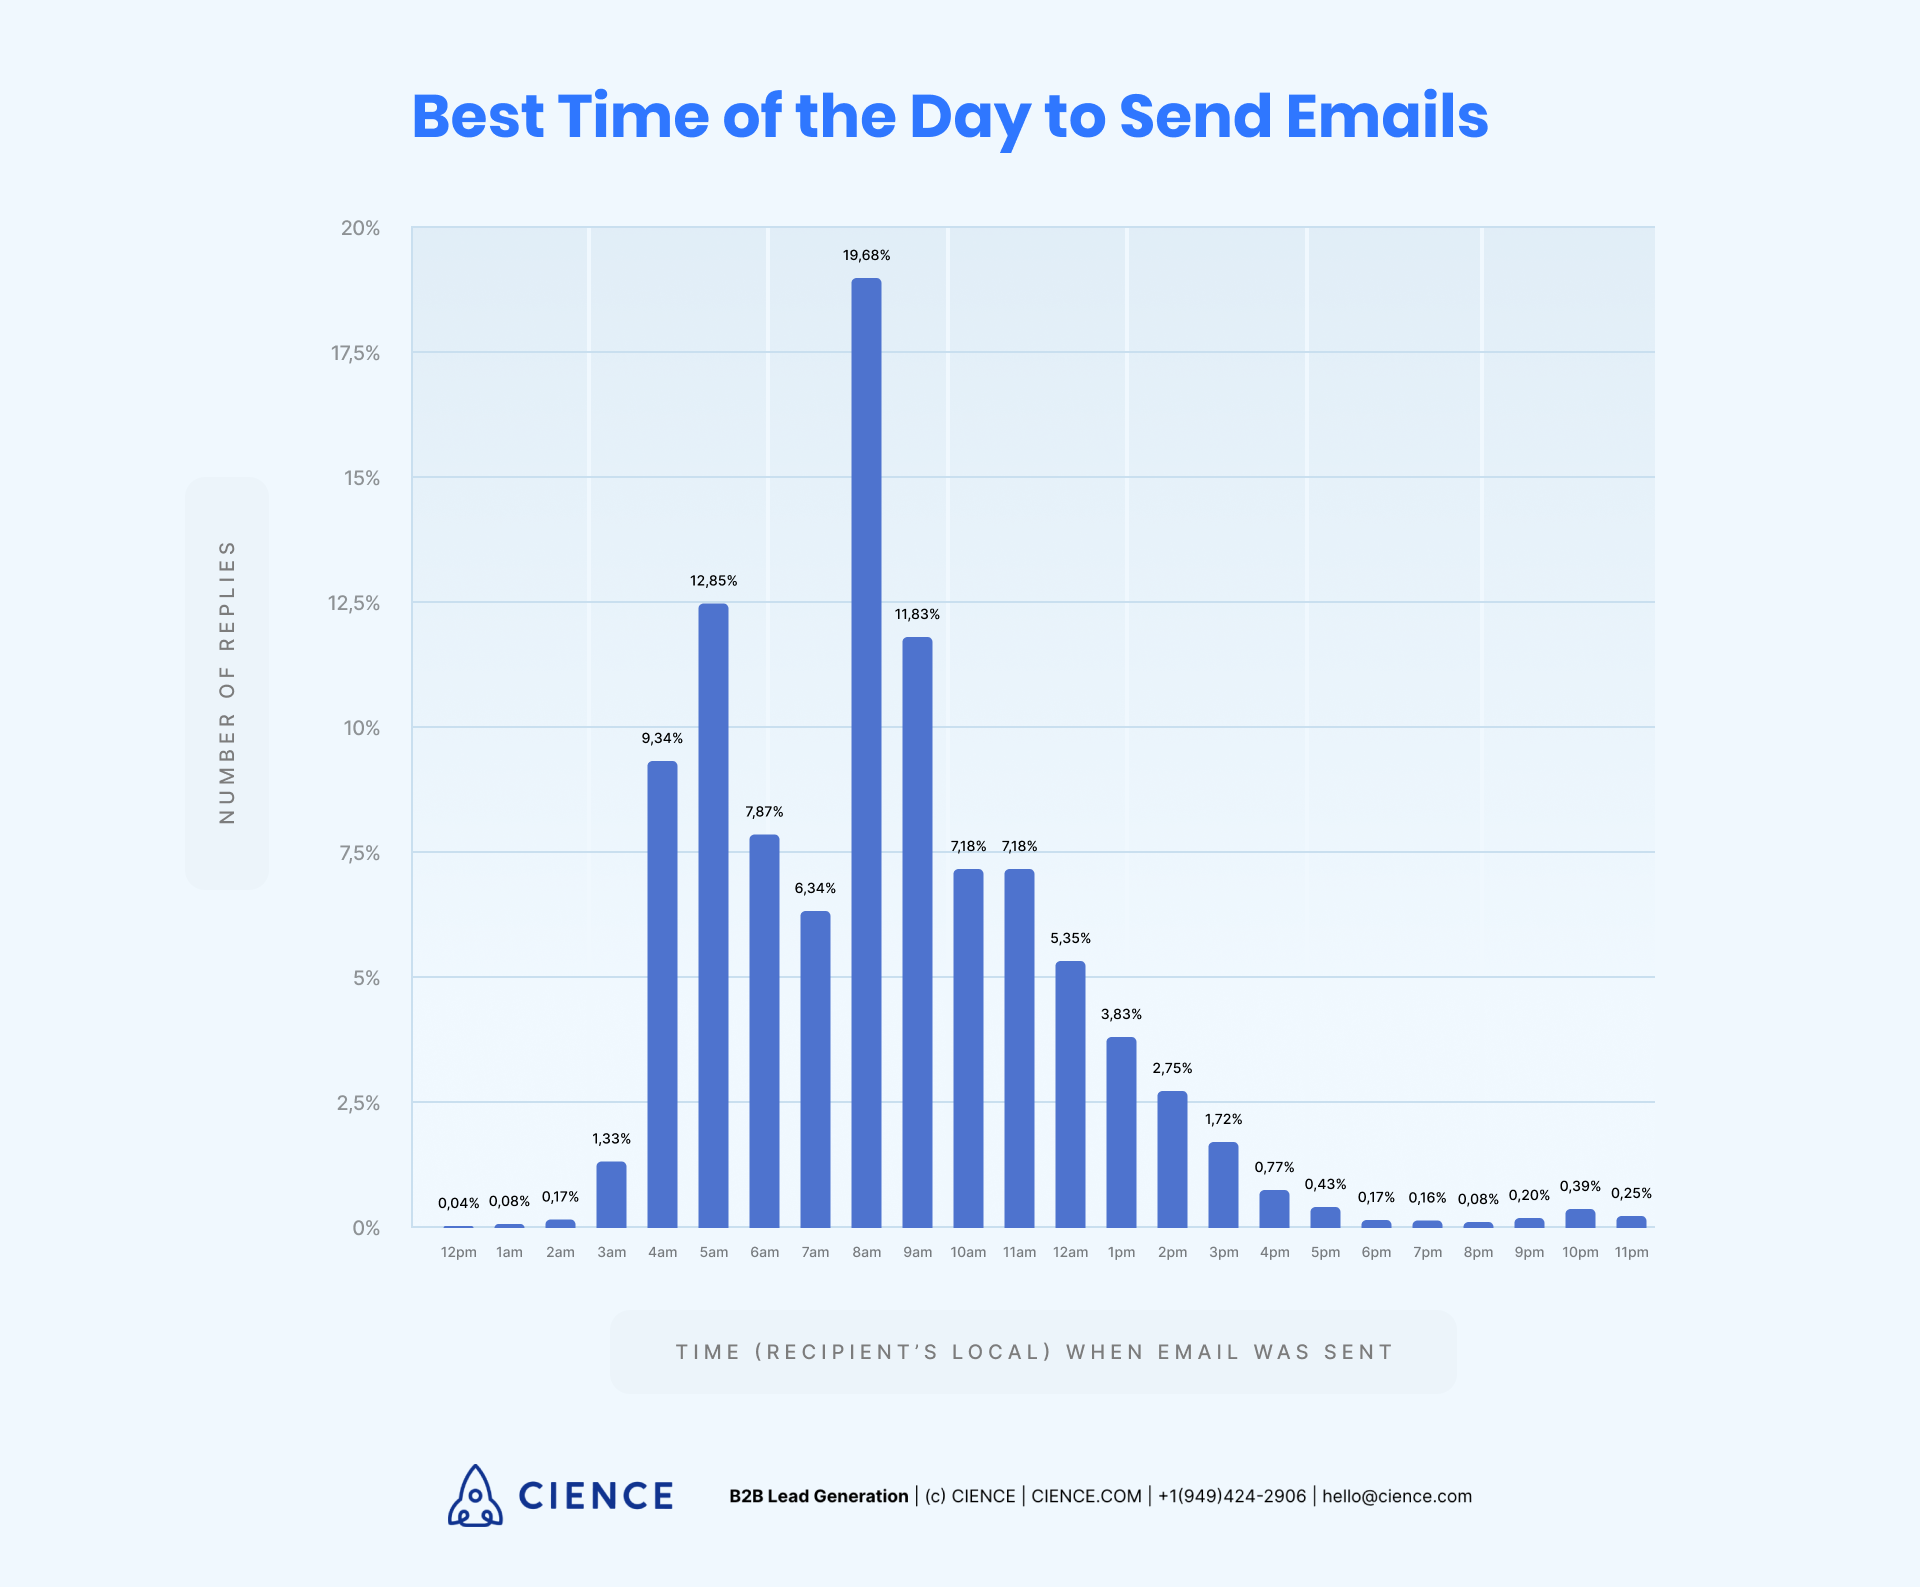 Best time of the day to send emails